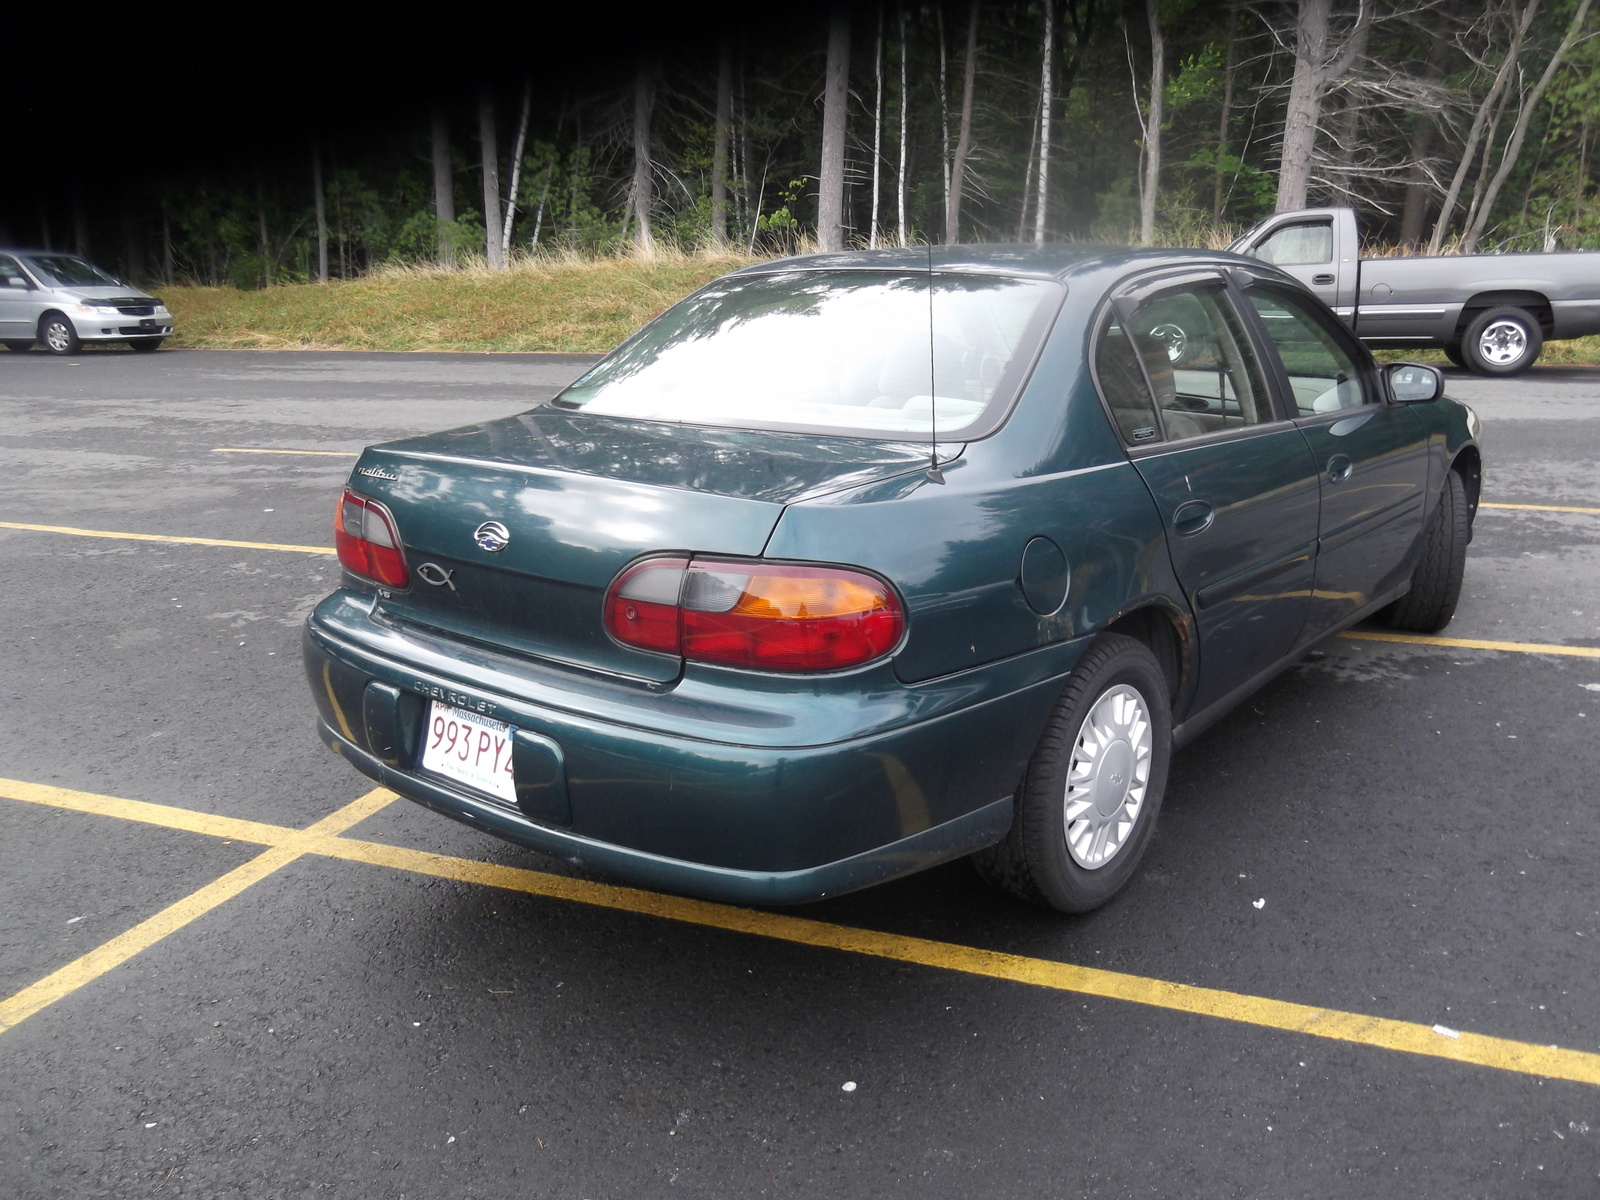 1999 Chevrolet Malibu Information And Photos Zombiedrive Chevy Power Steering Problem 21